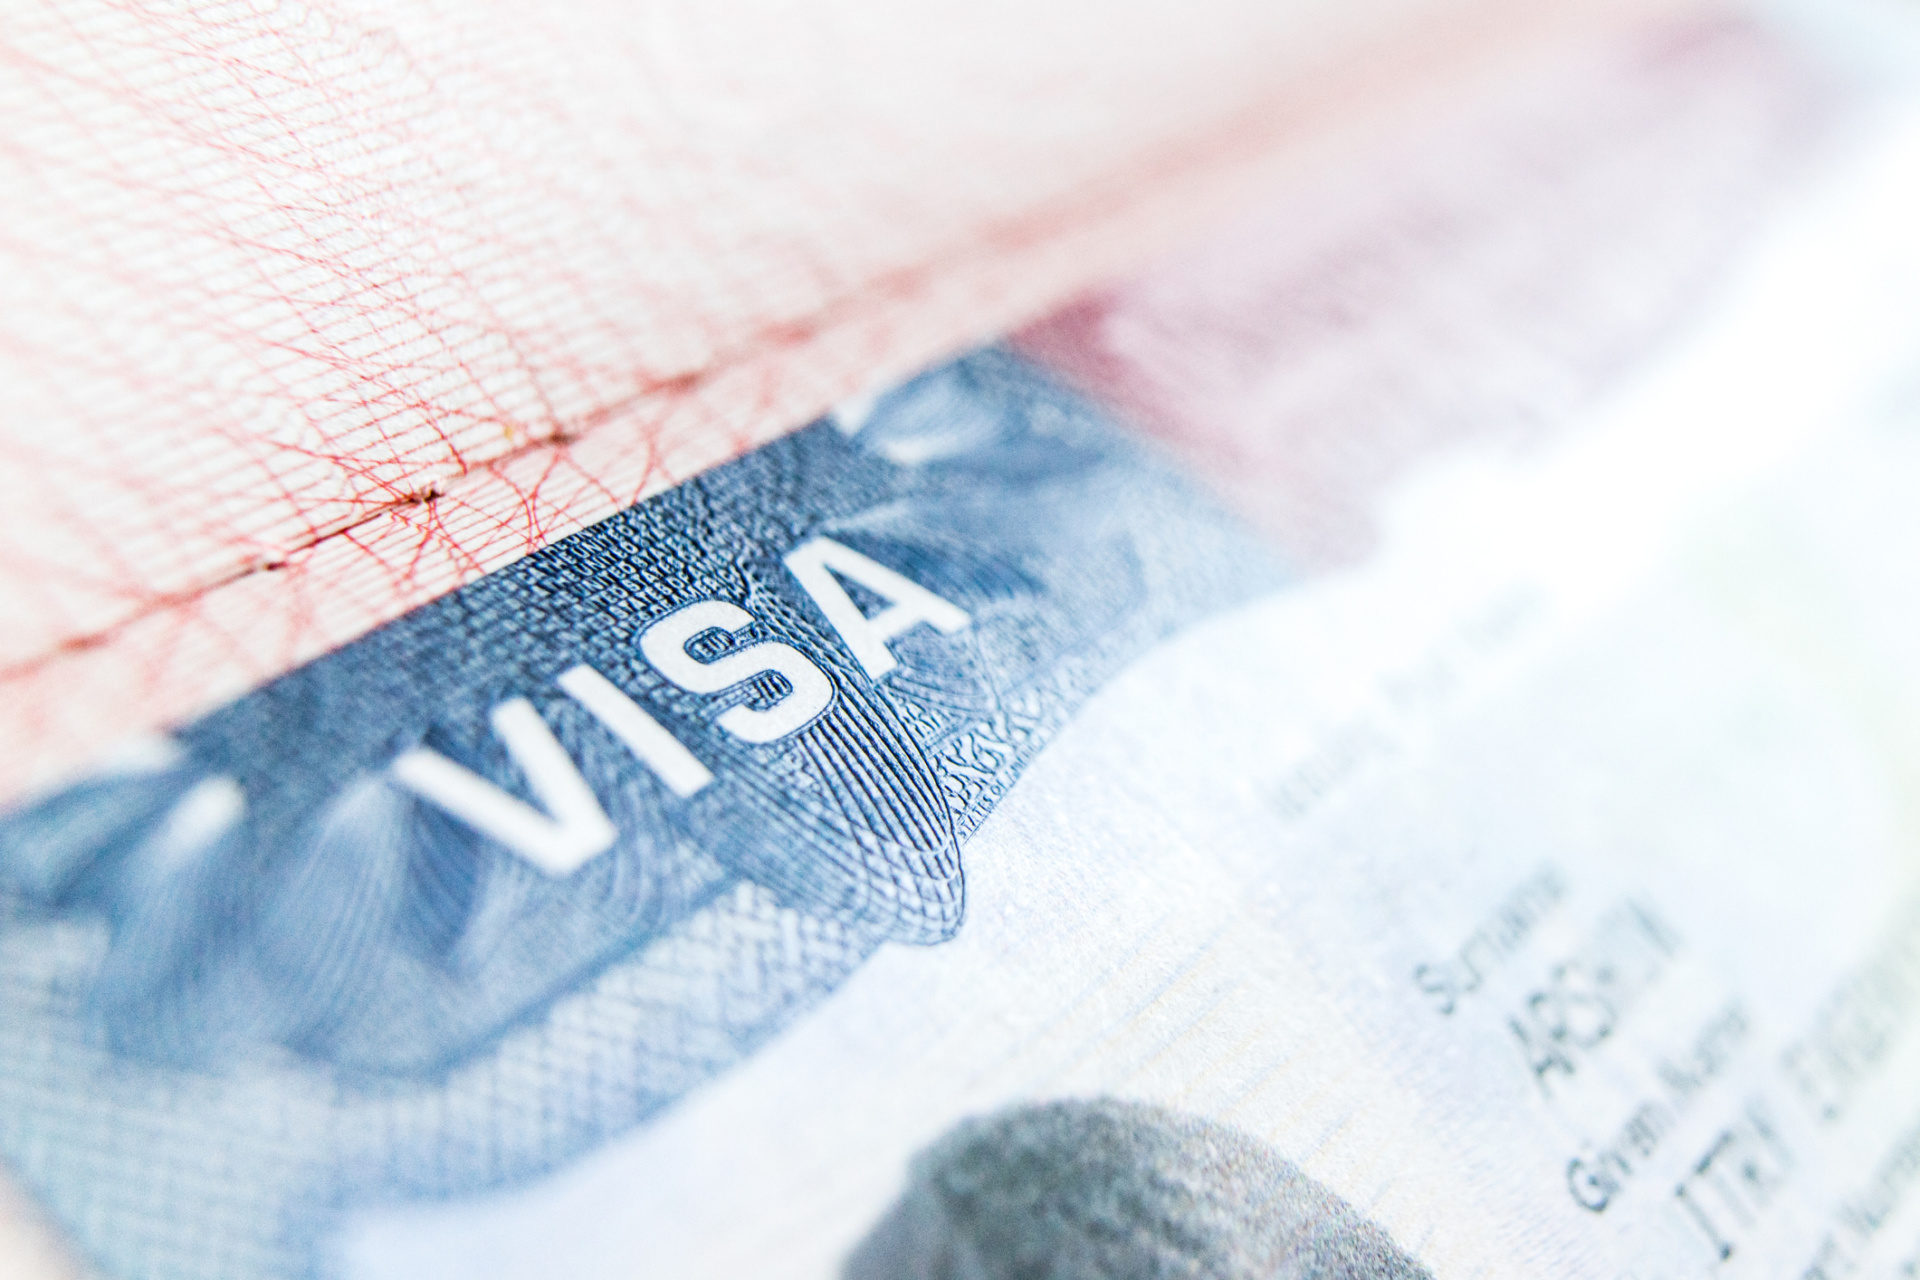 Should Legal Immigrants Be Allowed to Access Public Assistance?